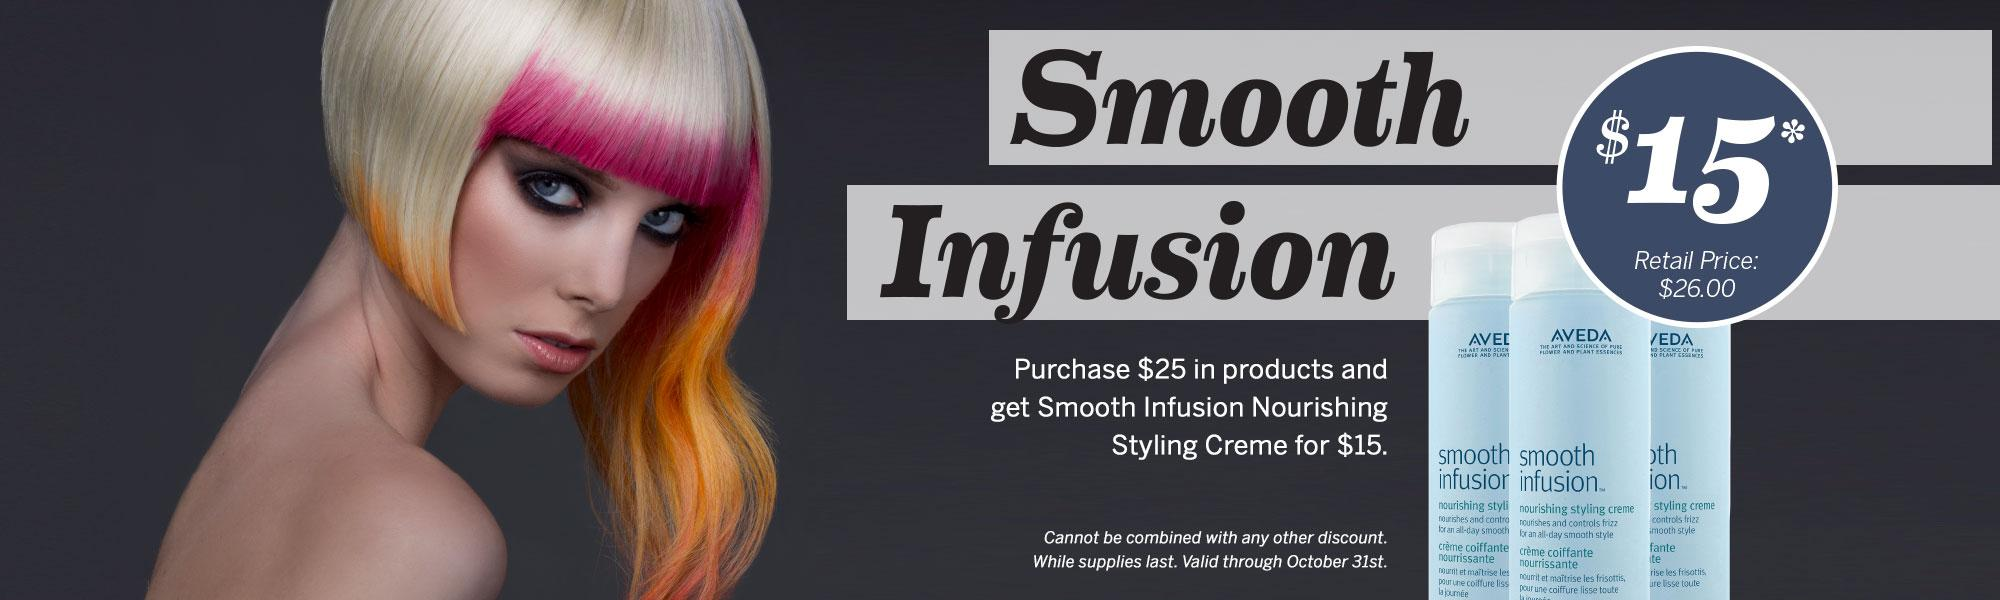 Aveda Institute Portland - $15 Smooth Infusion